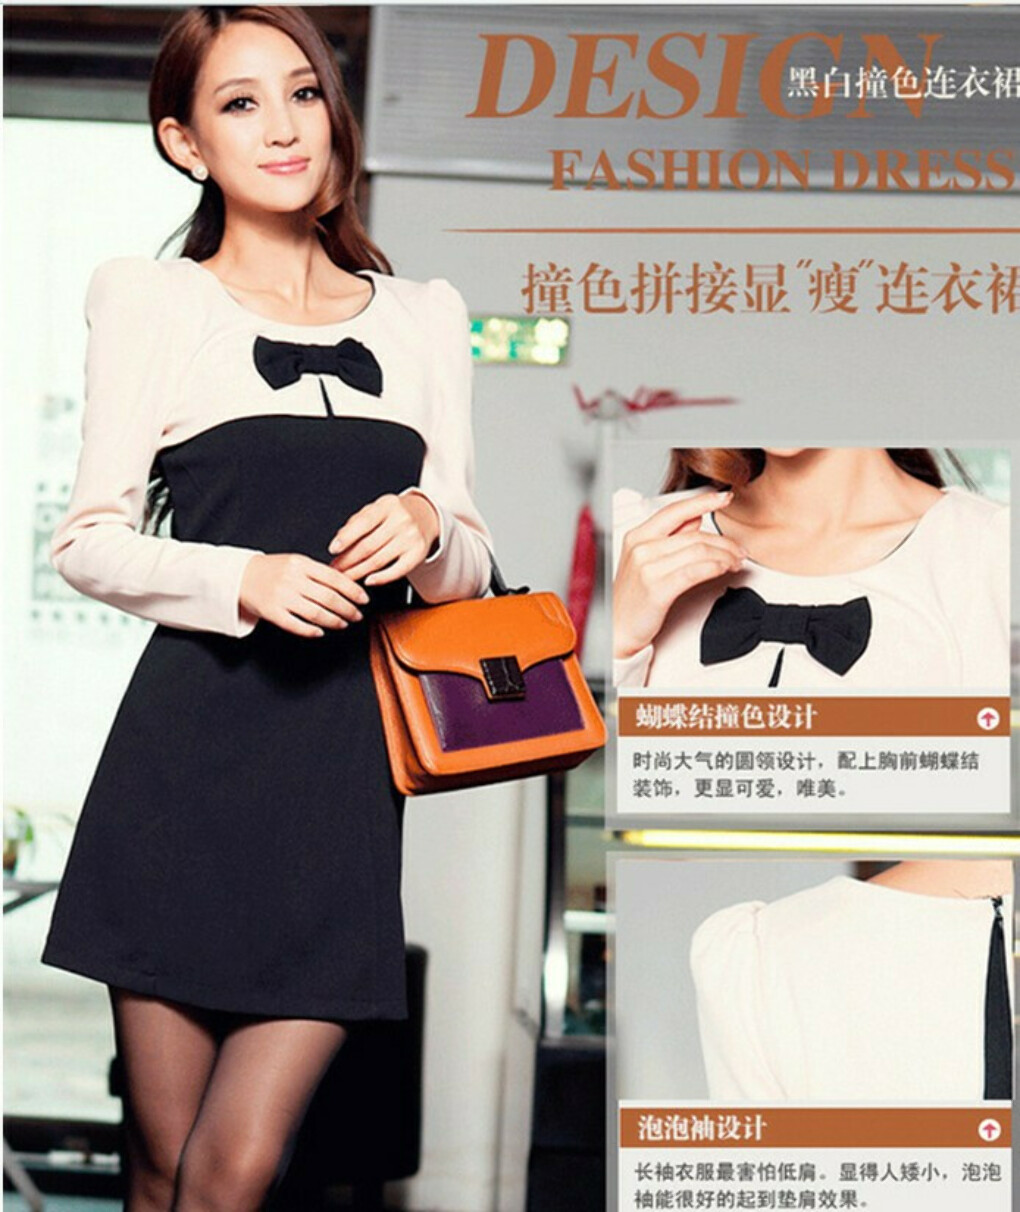 2013 new ladies fashion dress women's long sleeve bow dress spring Crew Neck kroean sweet cotton dress free shipping-in Dresses from Apparel & Accessories on Aliexpress.com